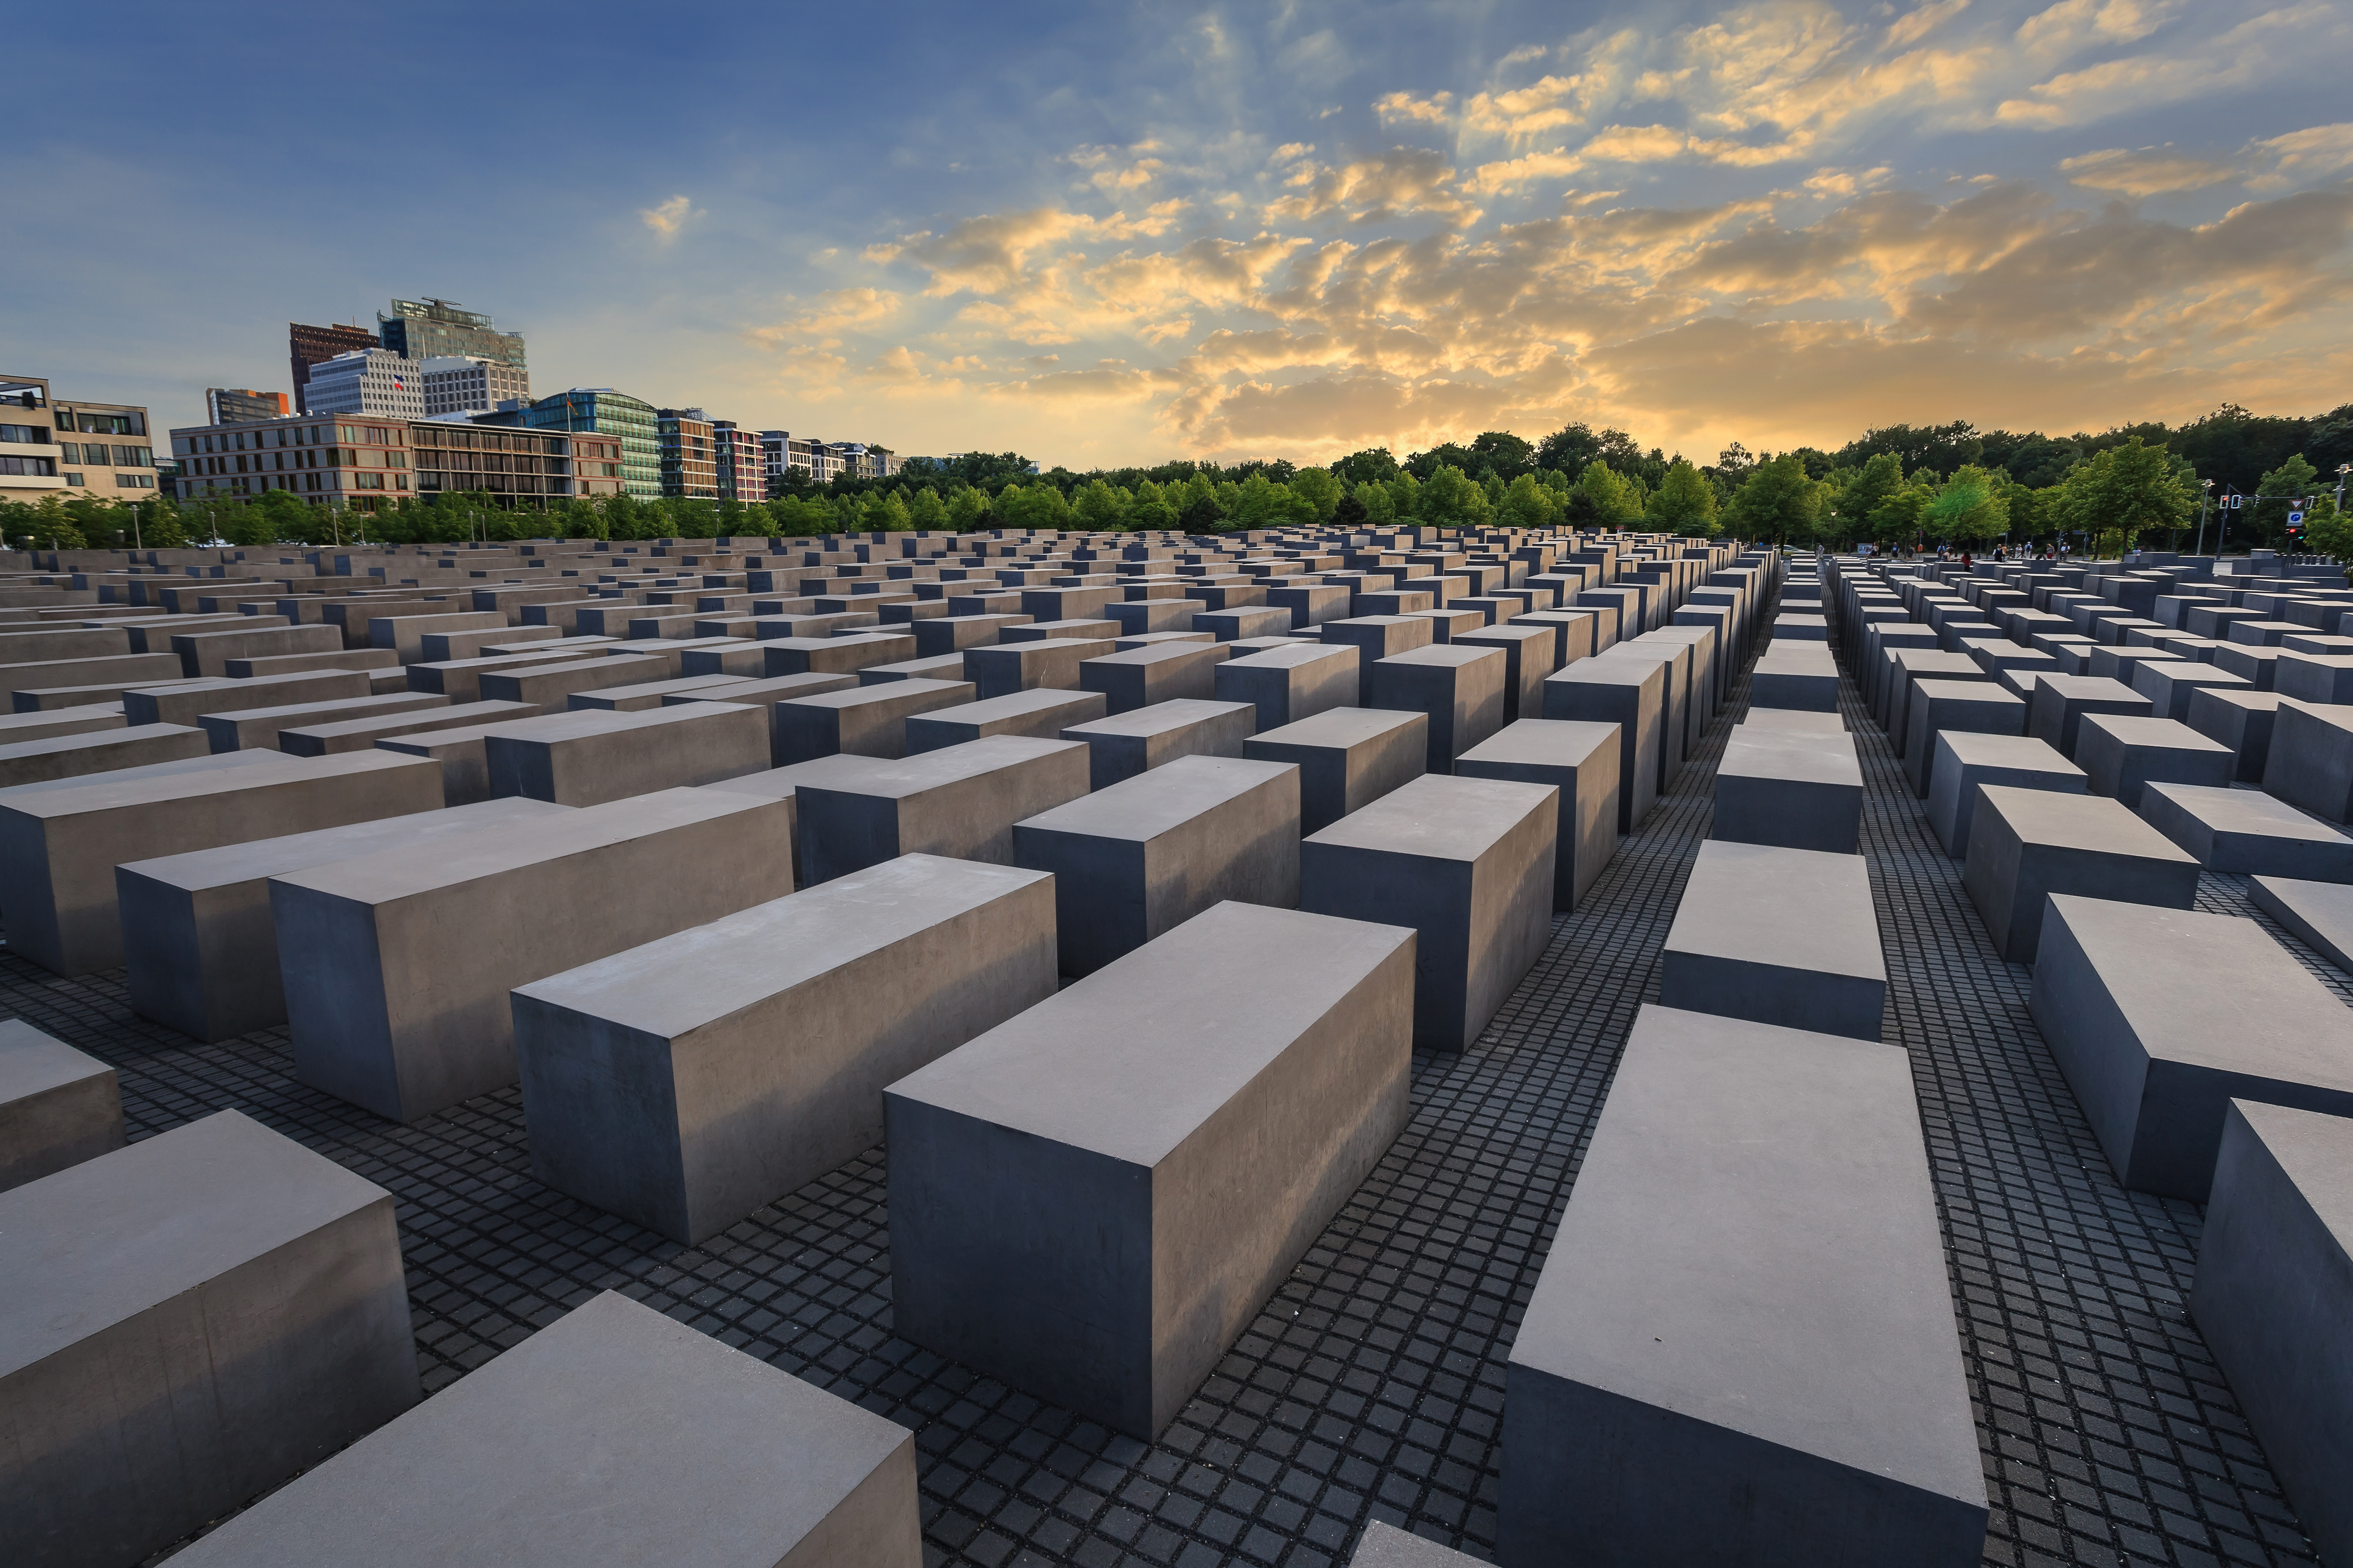 Holocaust-memorial, Things to do in Berlin